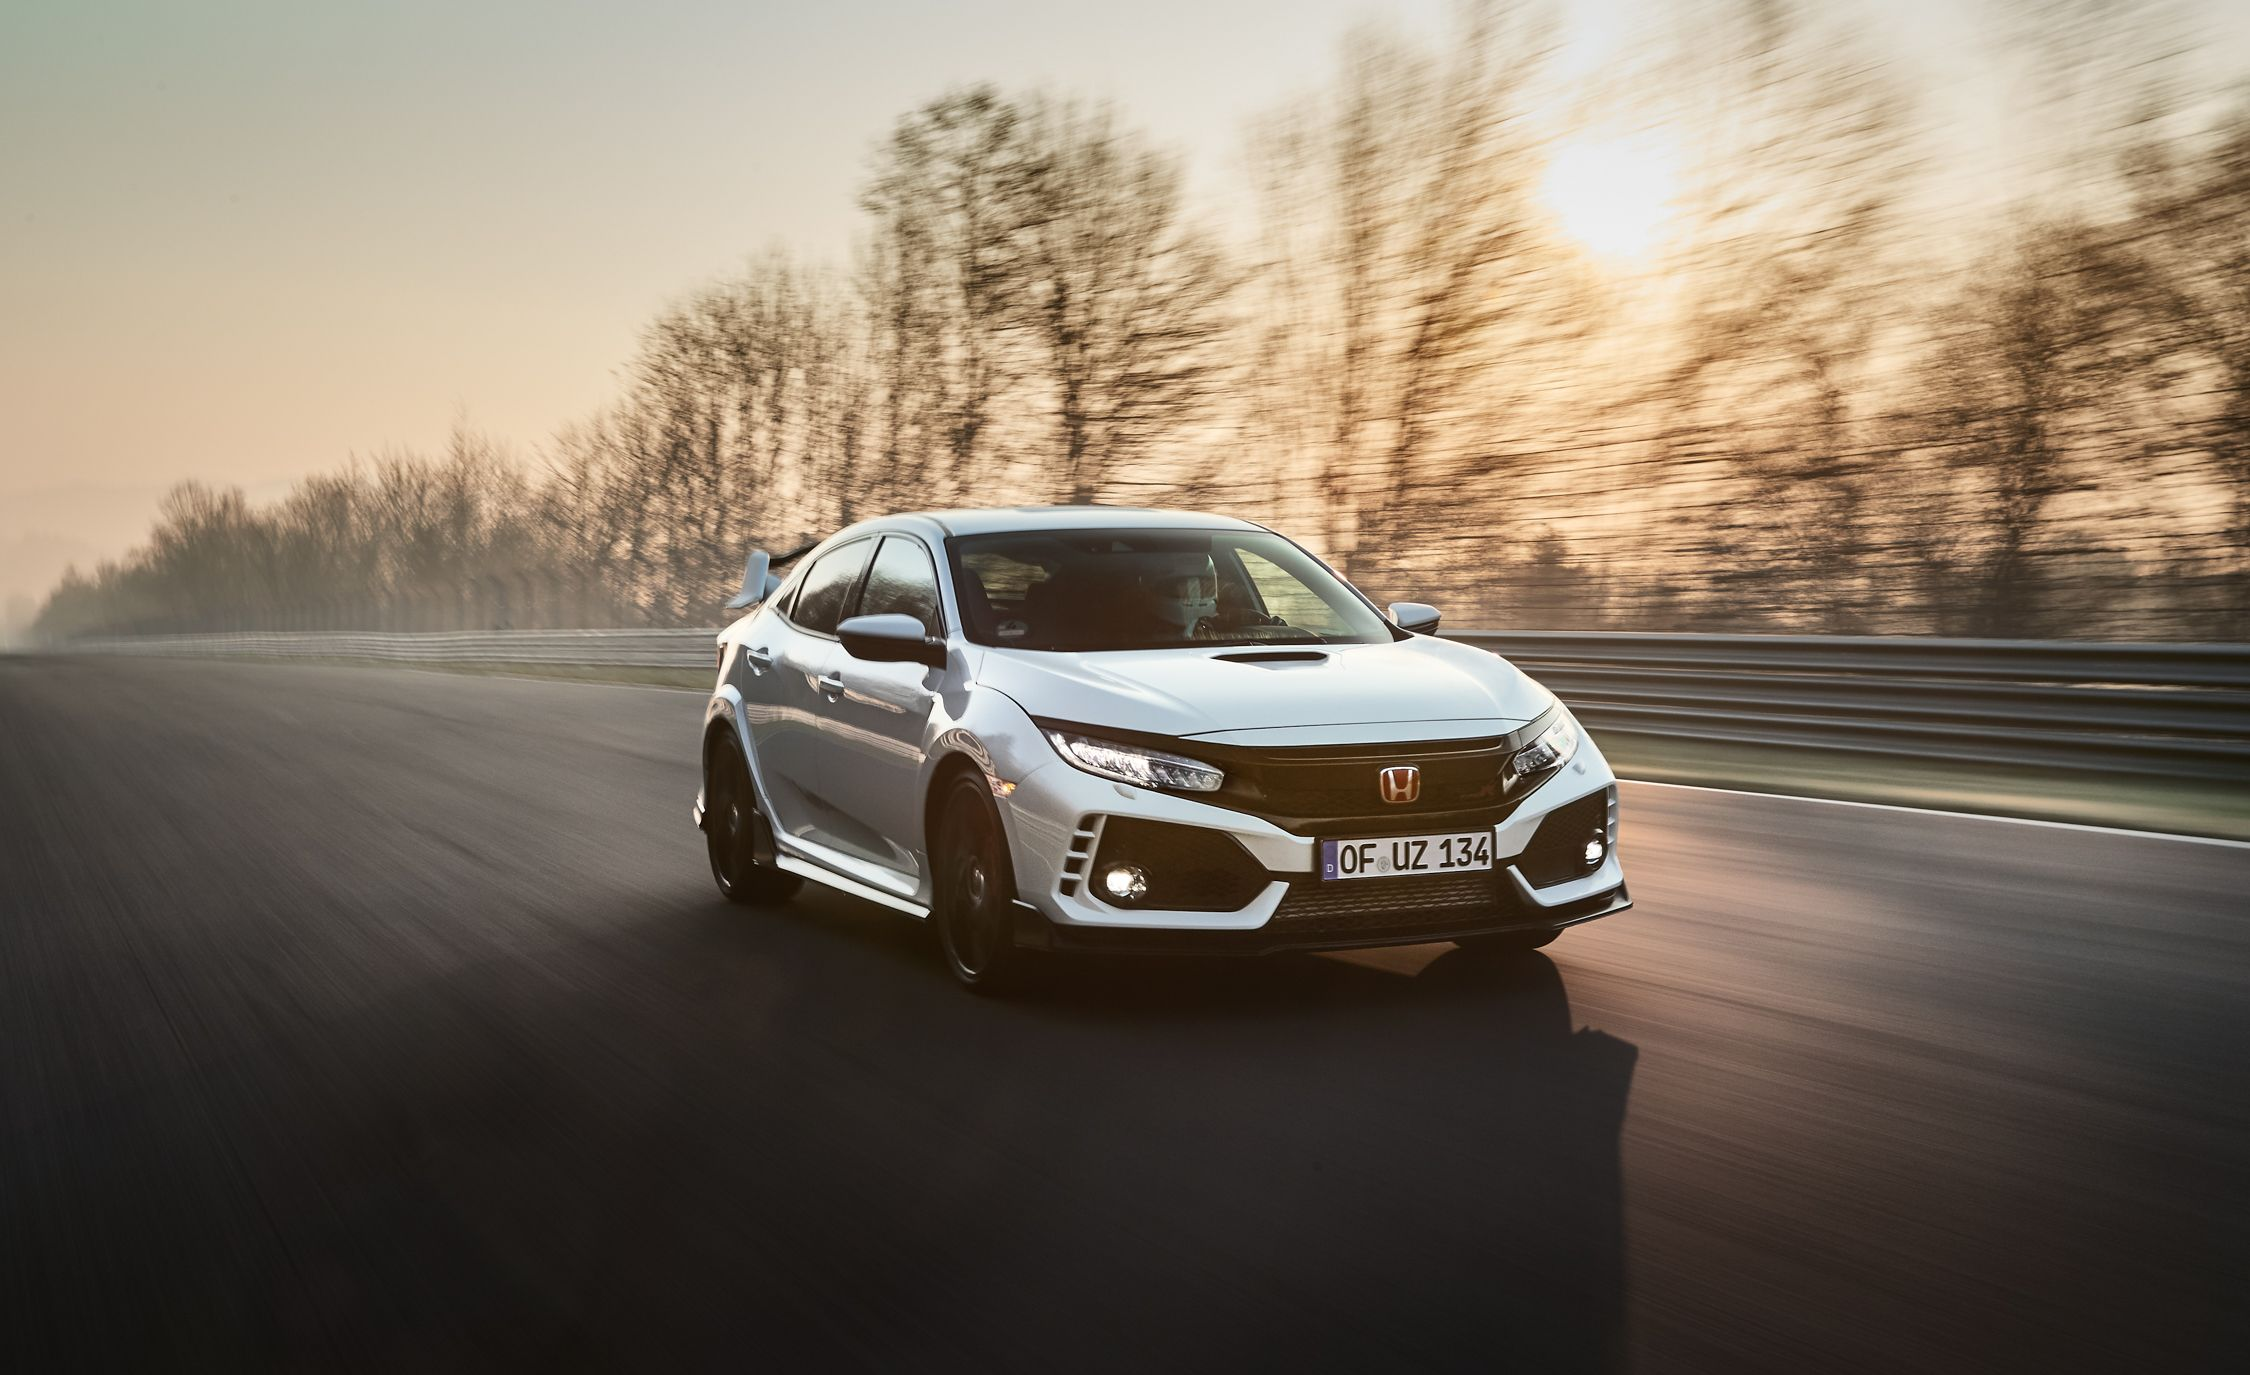 2017 Honda Civic Type R Fuel Economy Released  News  Car and